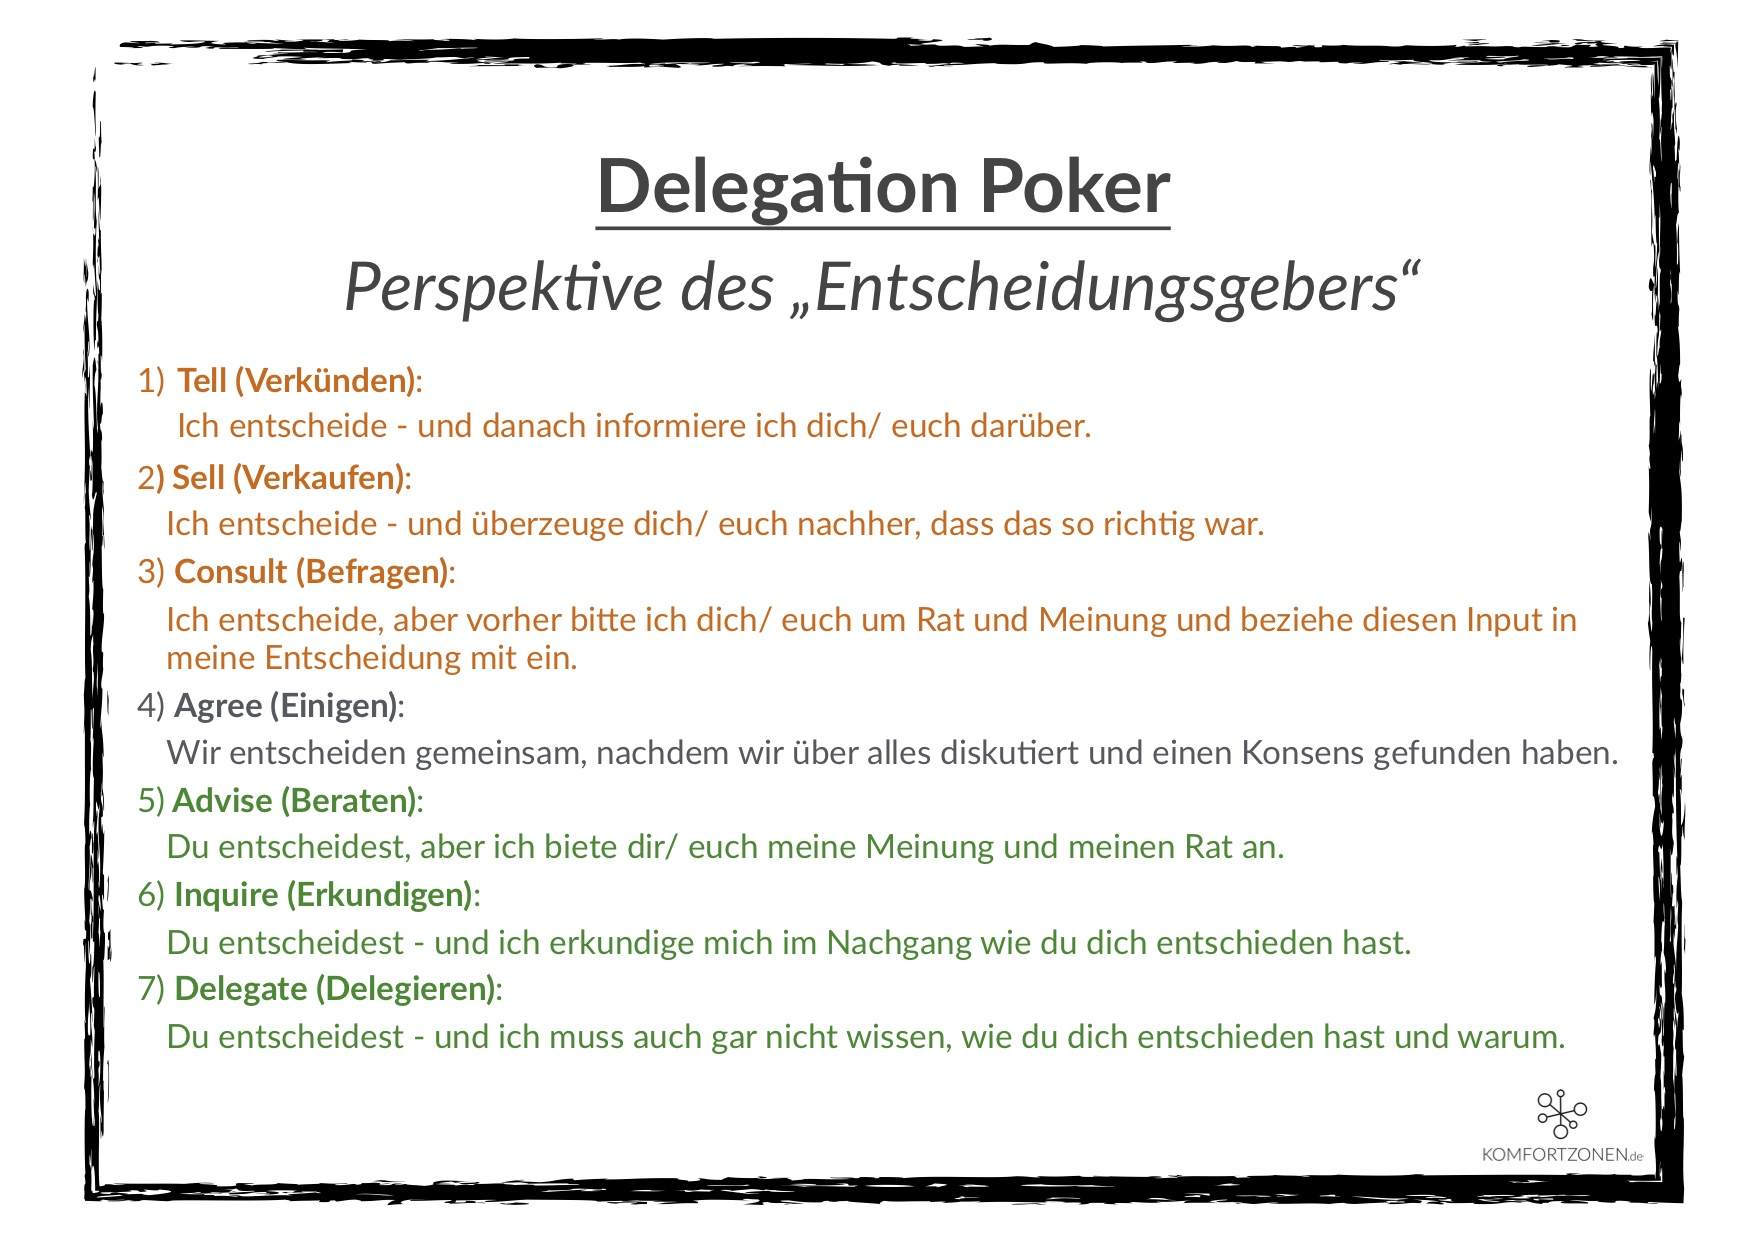 Delegation Poker Sieben Delegations-Stufen